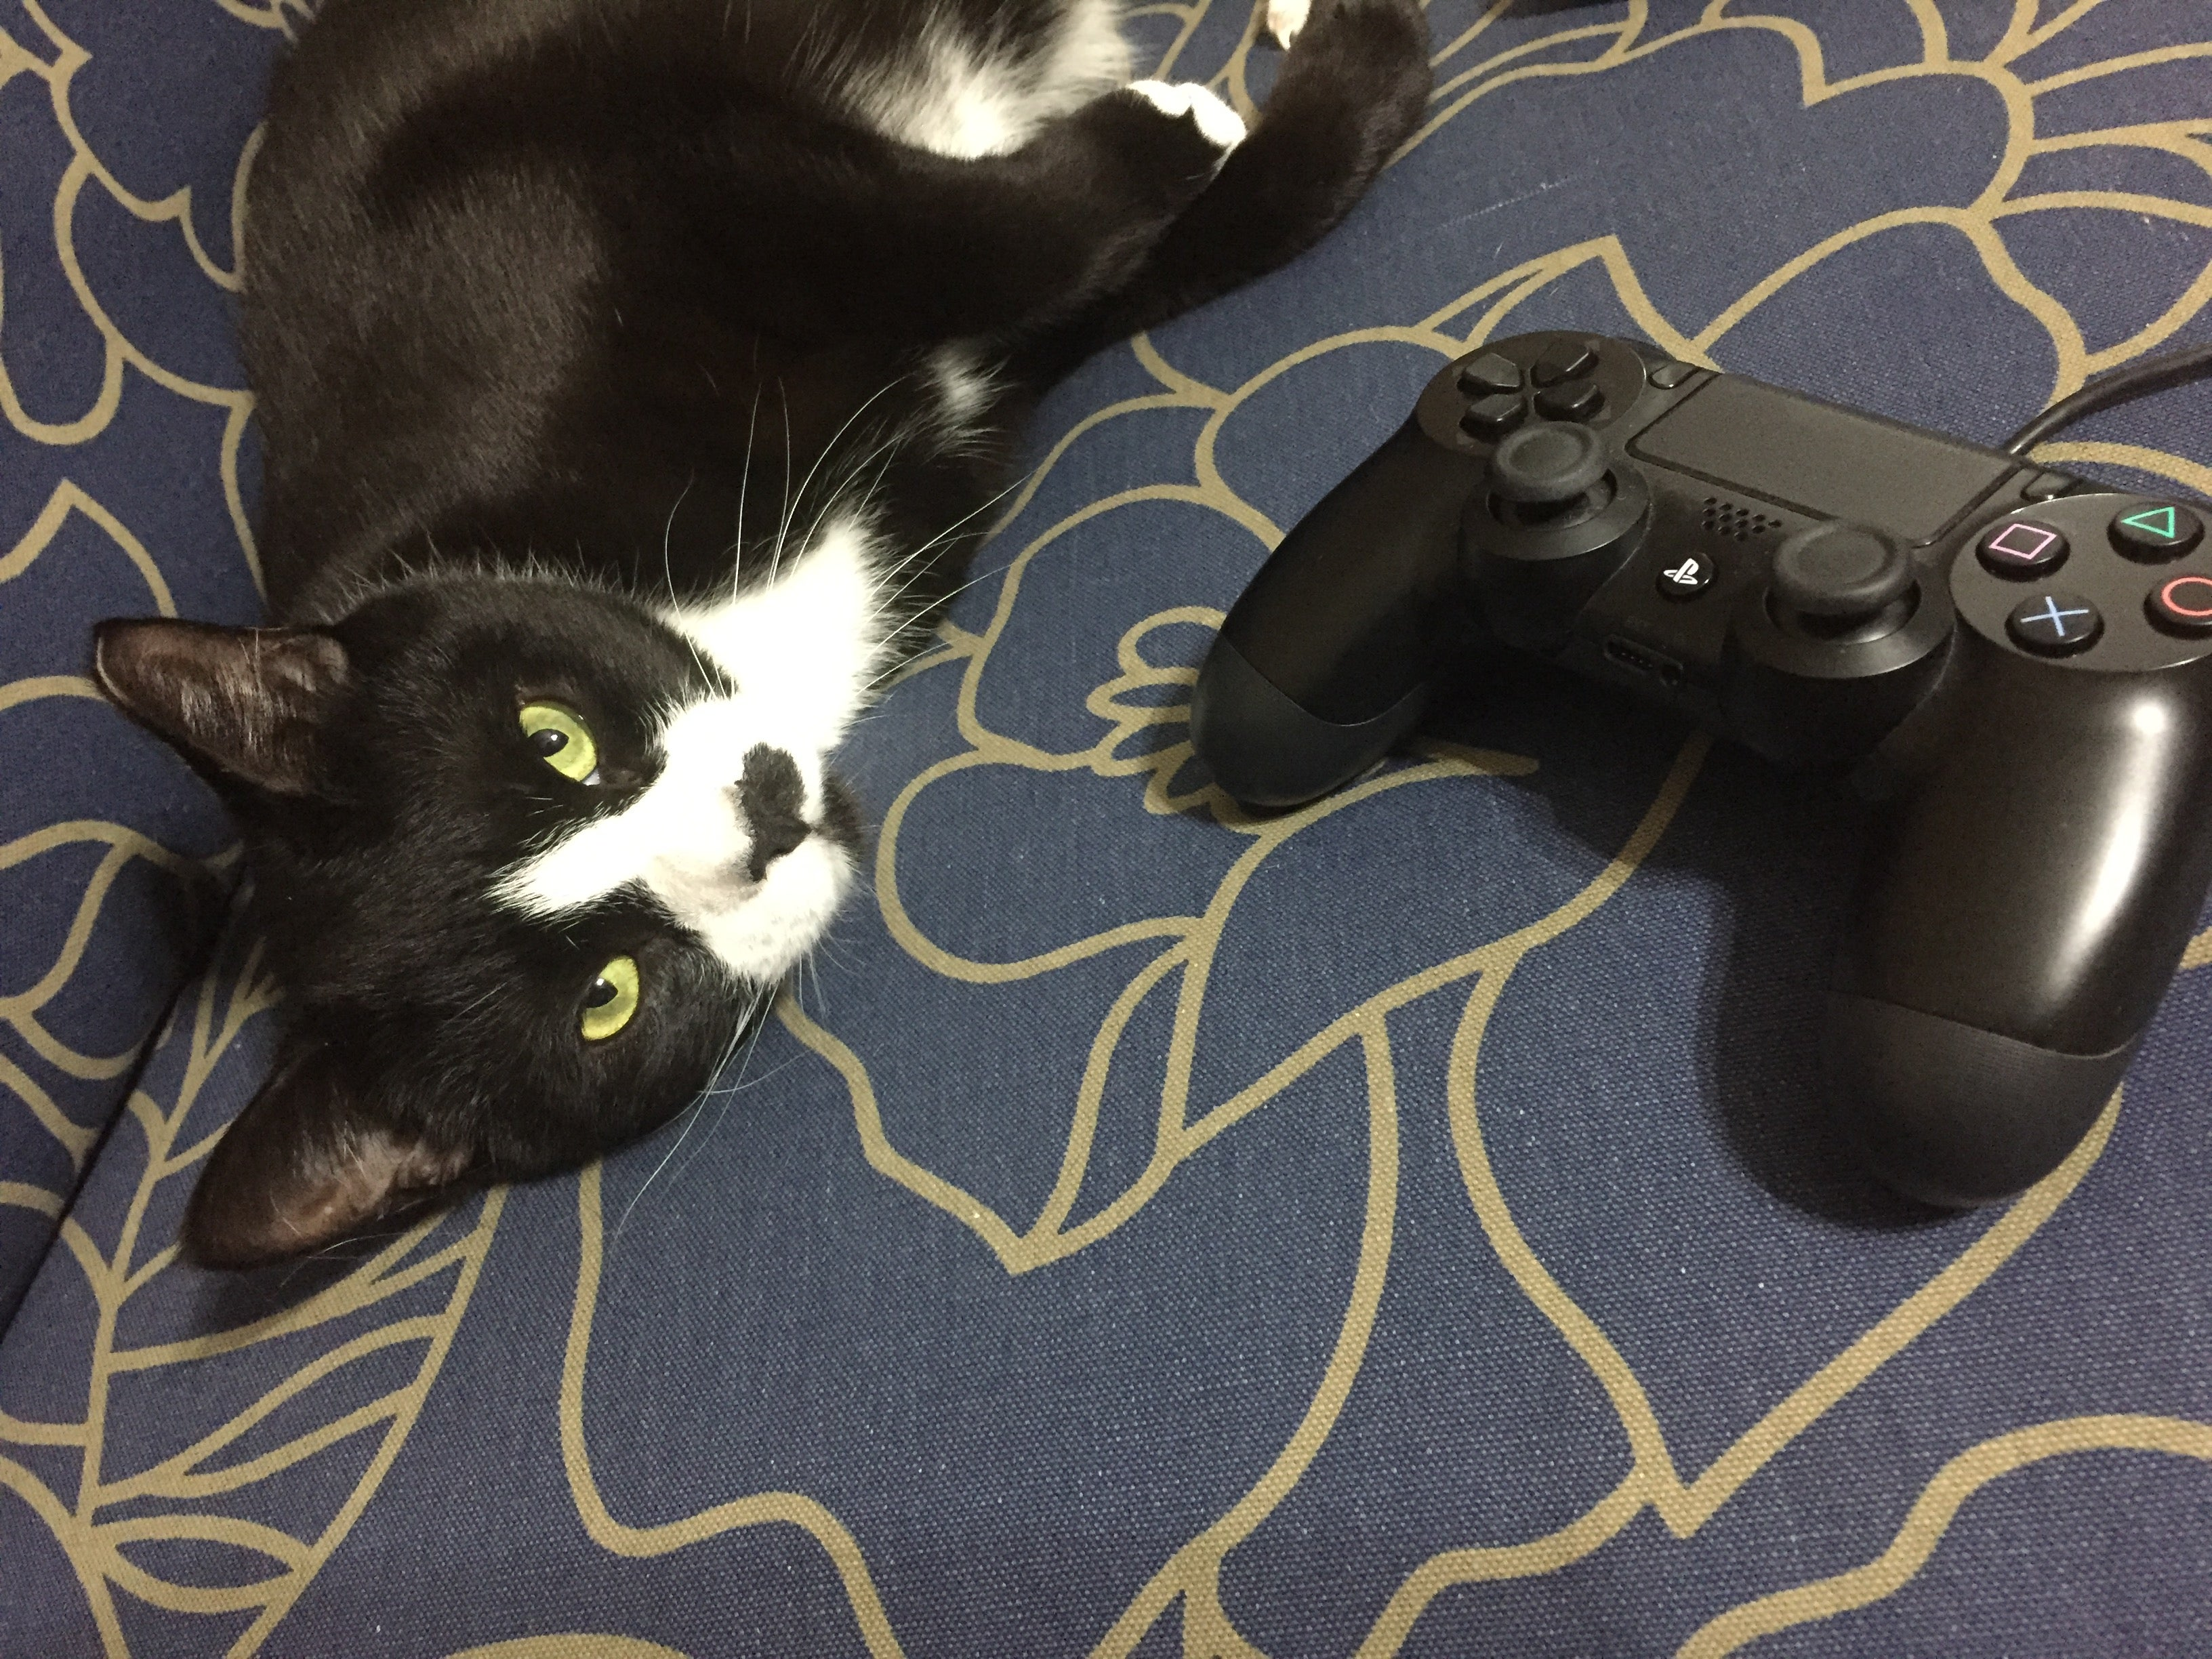 How To Stop A Cat From Chewing On Video Game Controller Cables